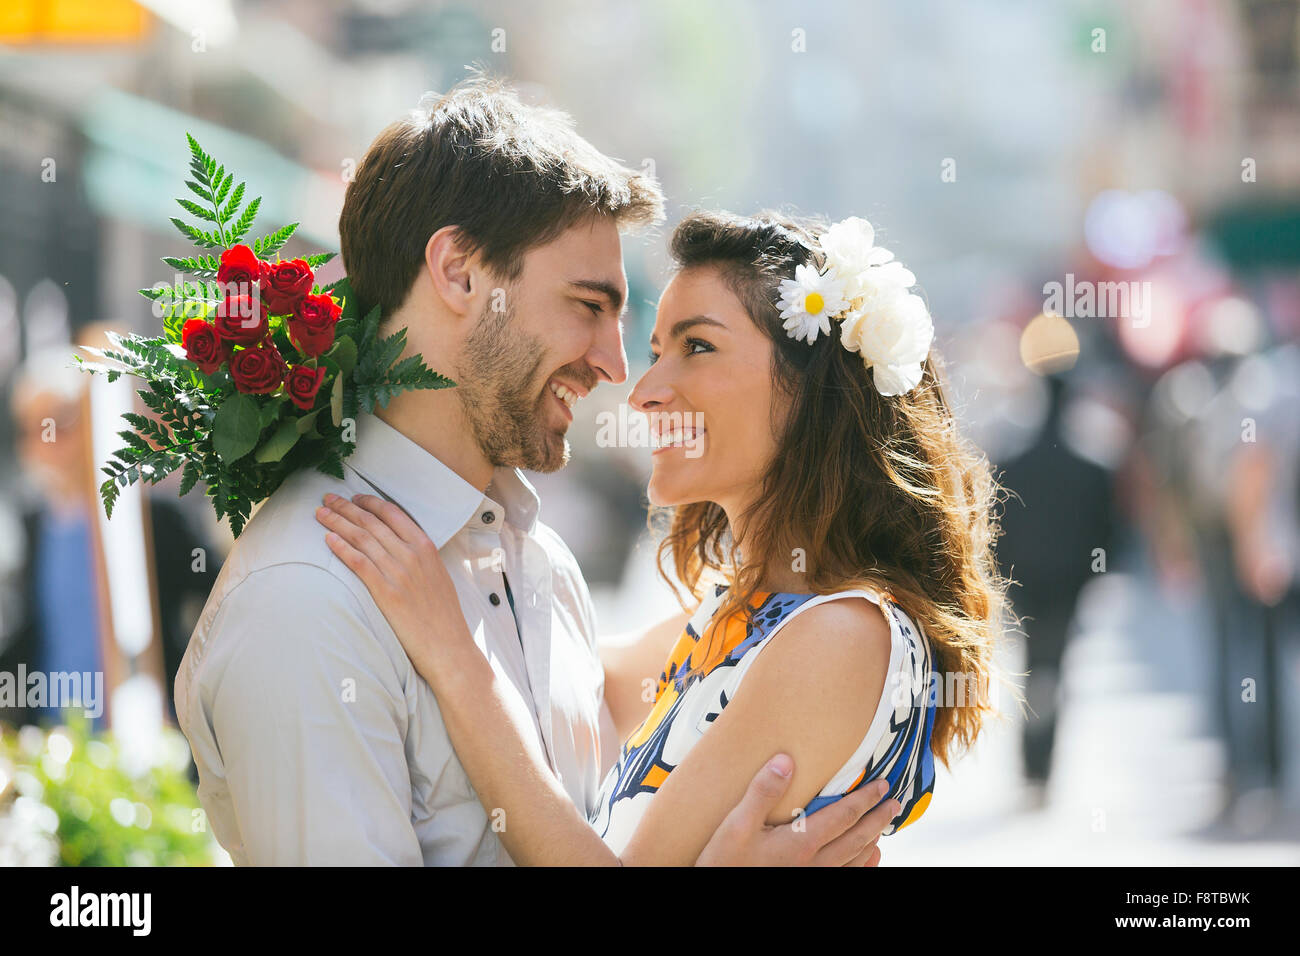 Young couple dating in Paris - Stock Image